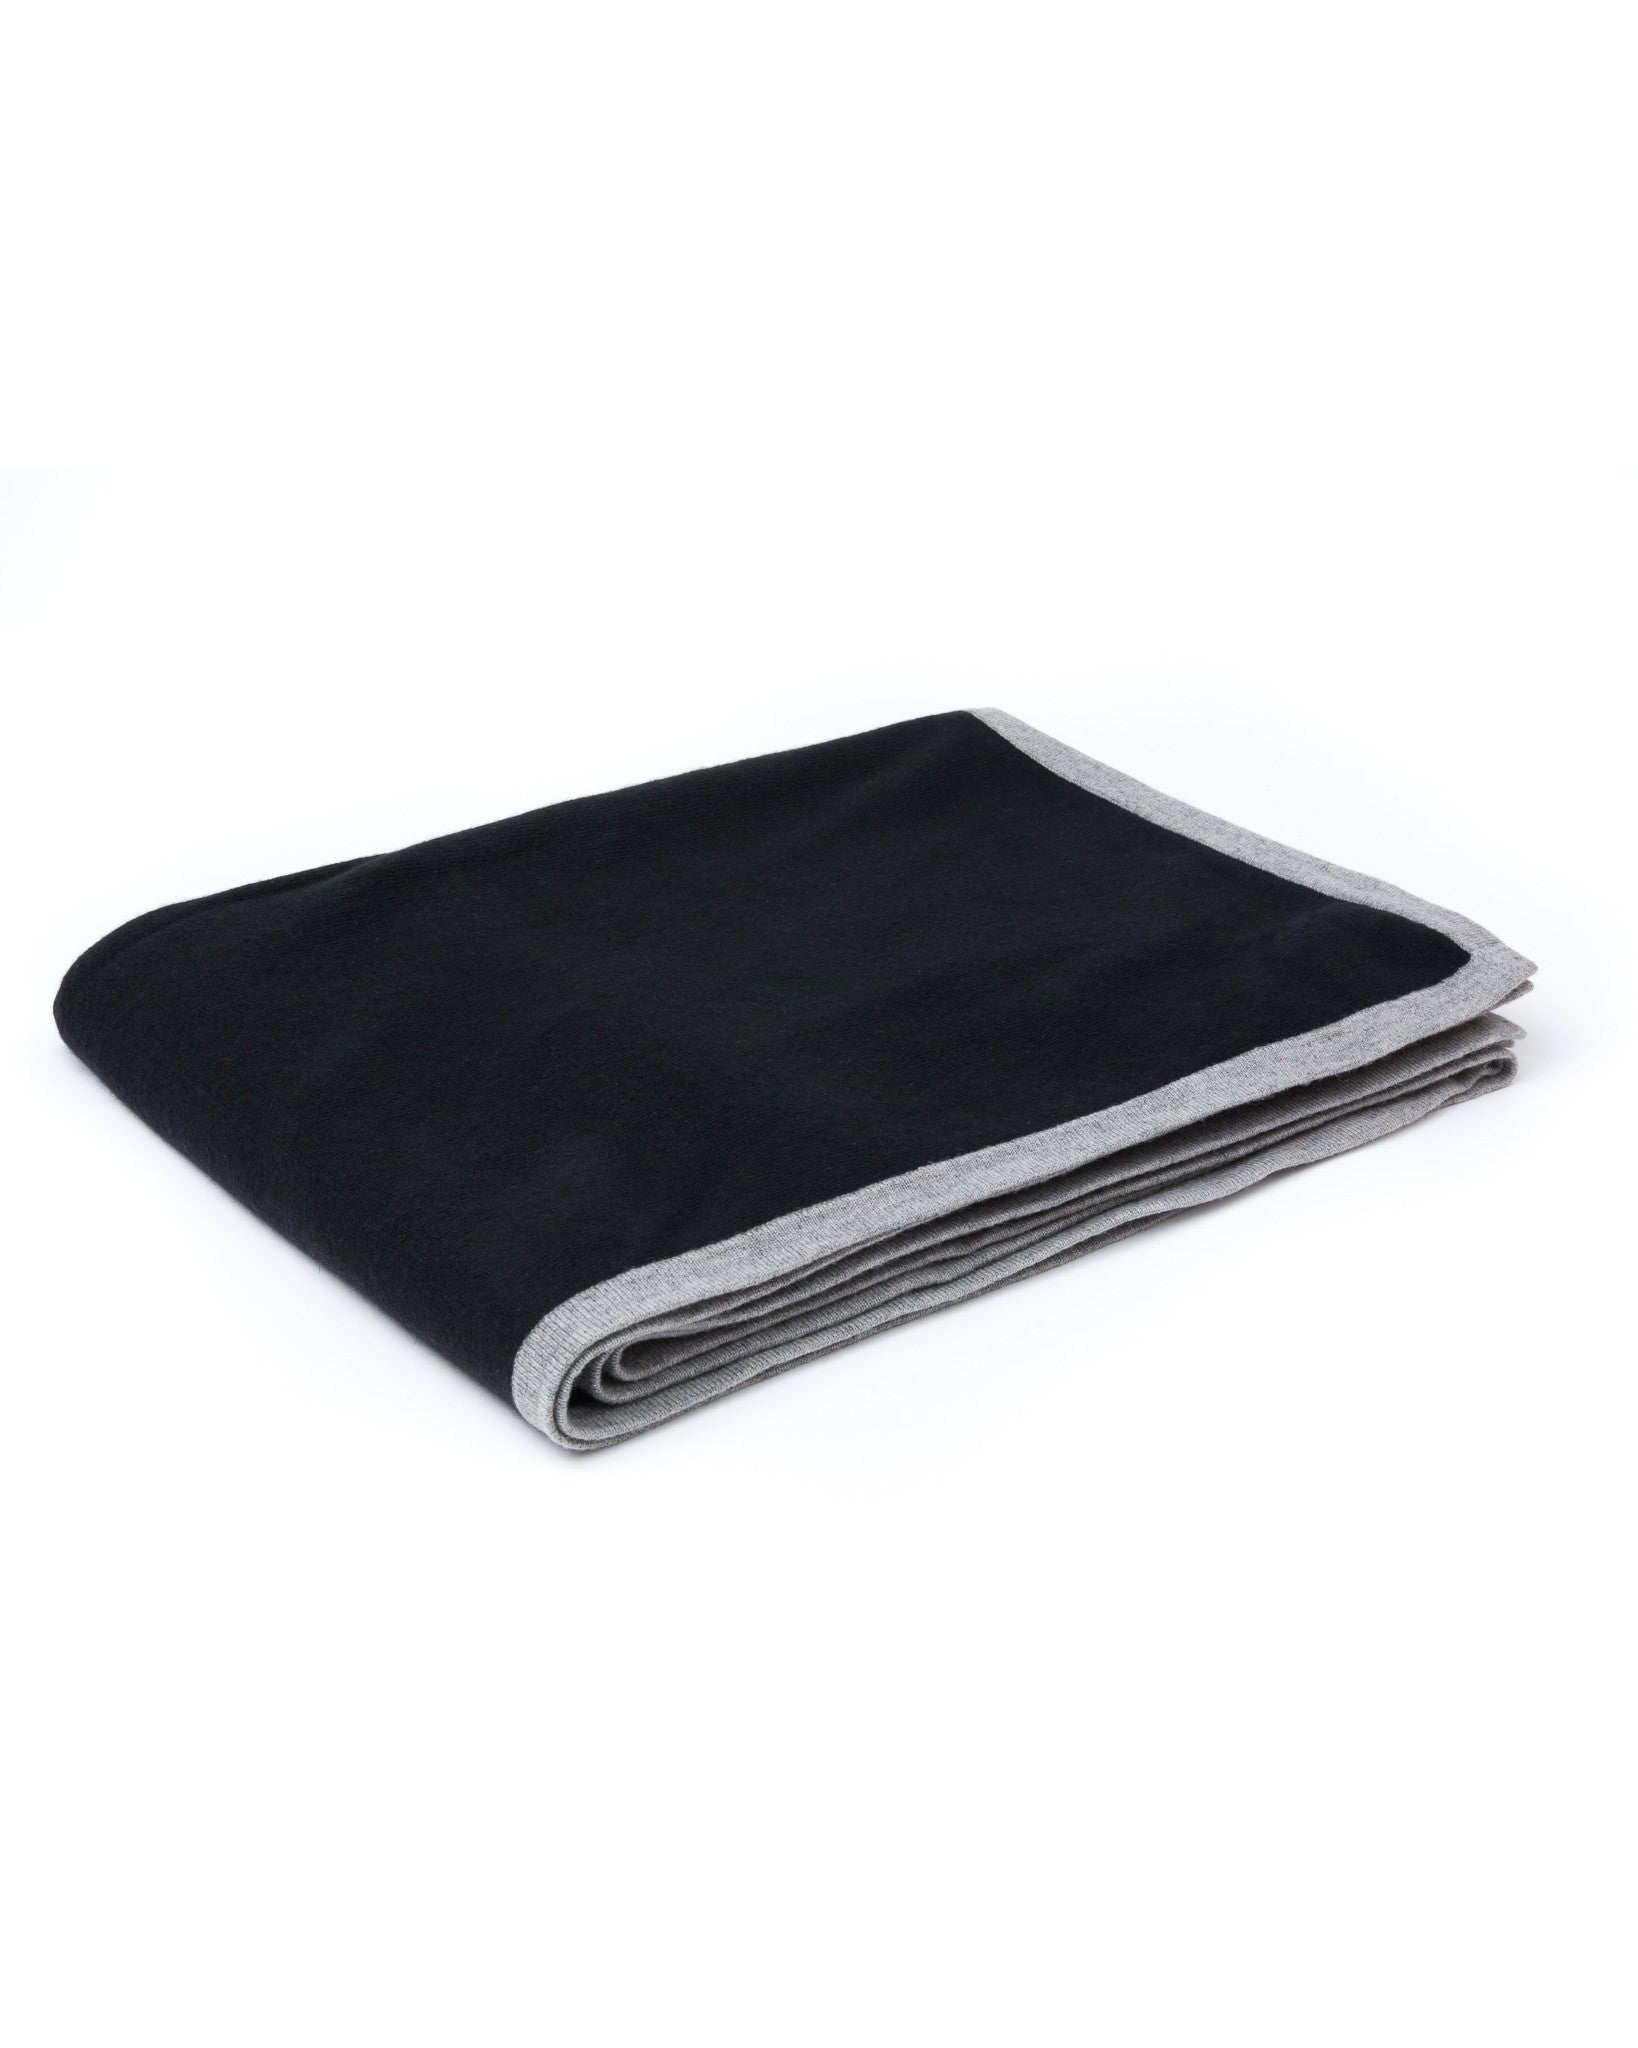 HOME - Travel Blanket 60x48